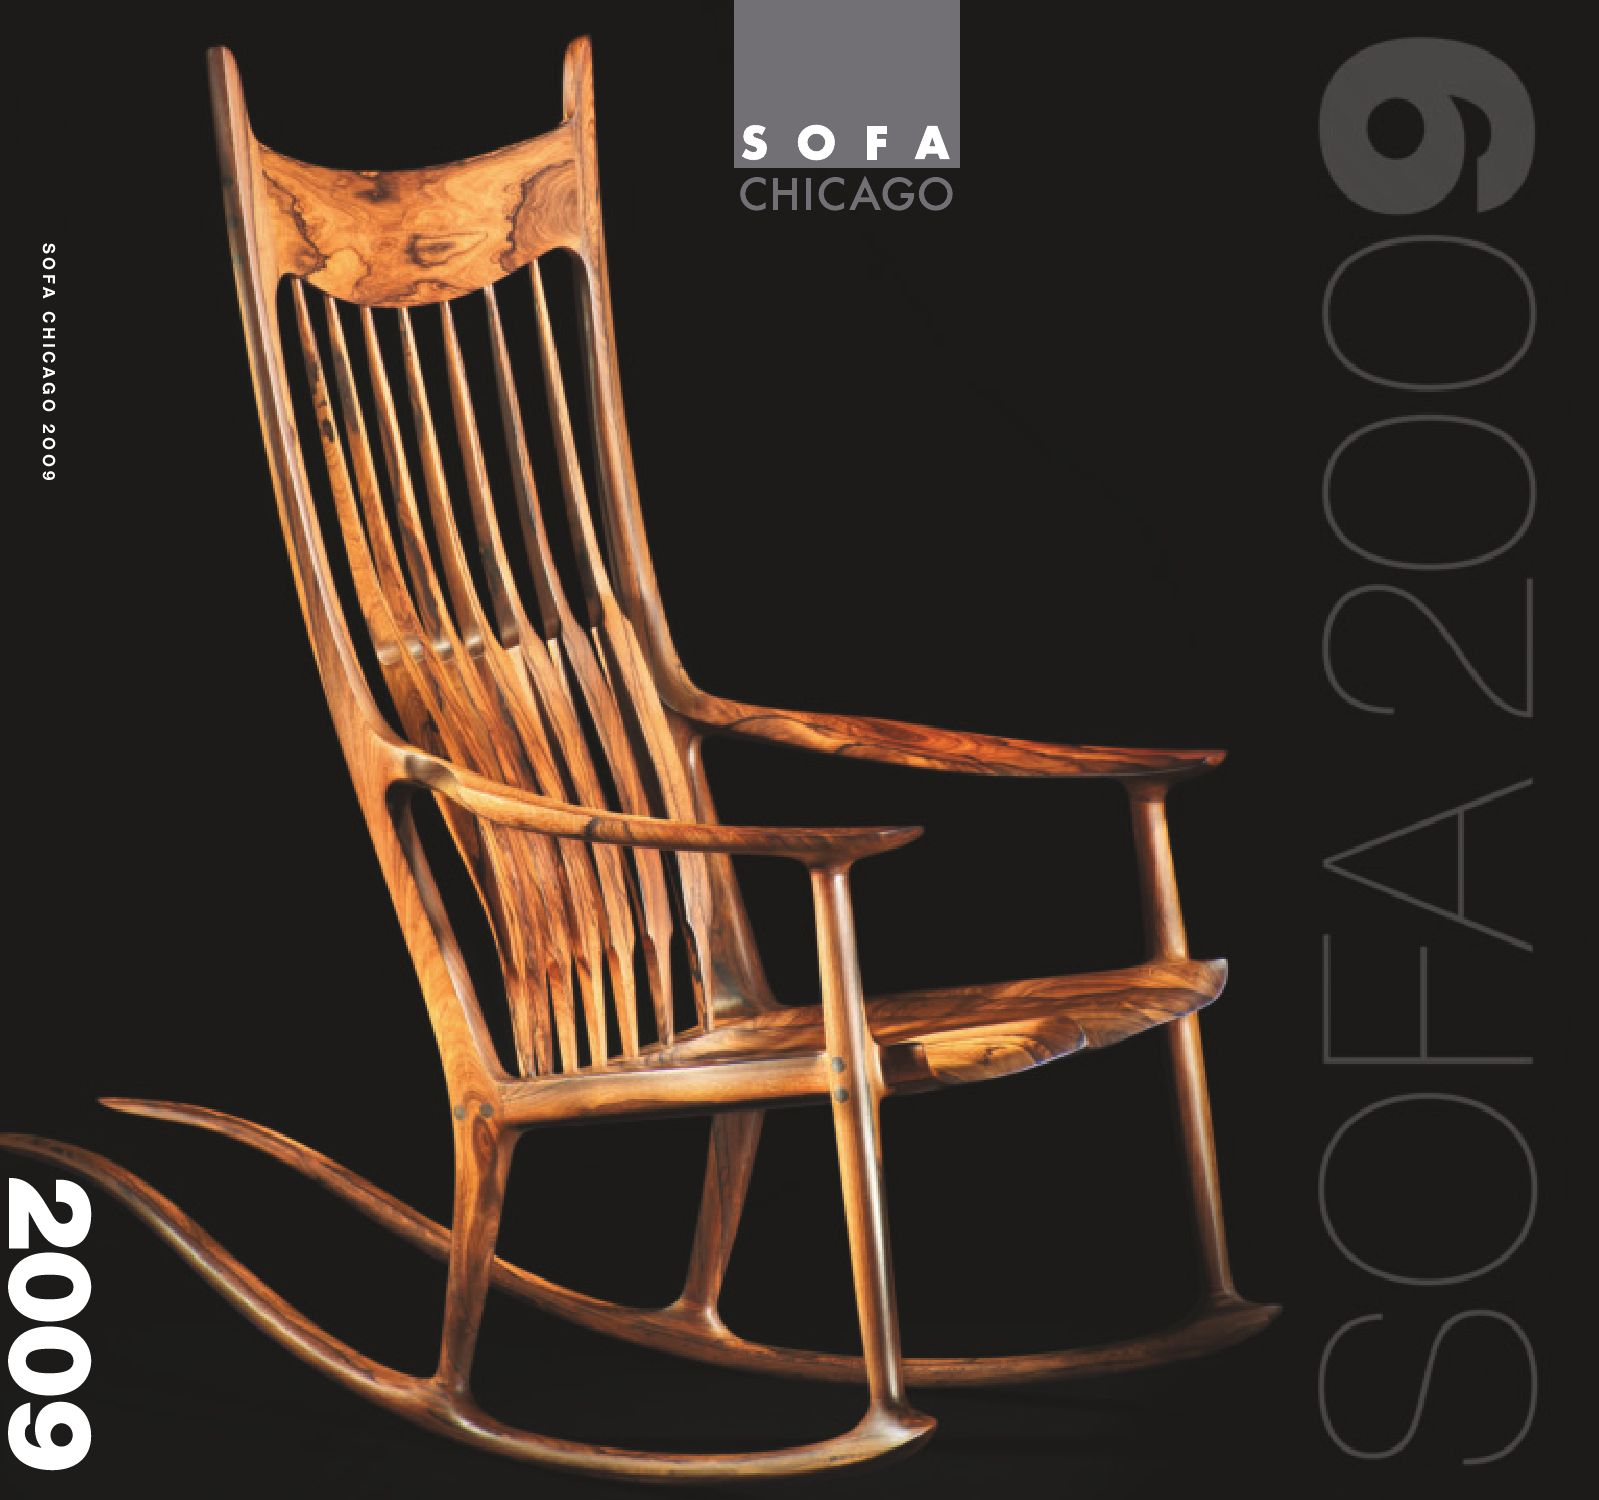 sofa chicago 2009 catalog by sofa chicago produced by urban expositions issuu